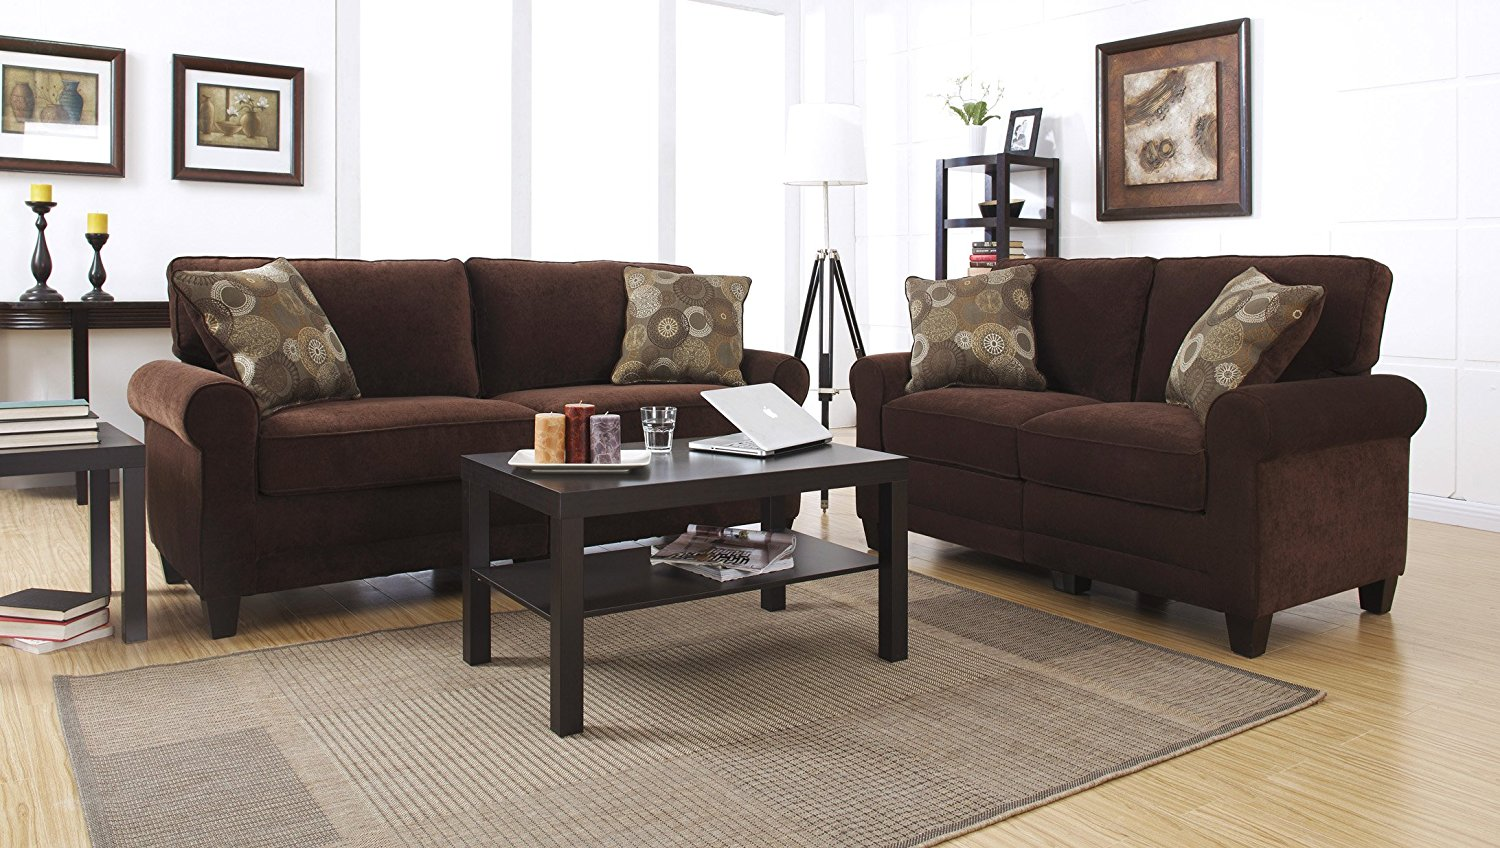 Serta chocolate sofa includes 2 decorative pillows for Affordable furniture 3 piece sectional in jesse cocoa